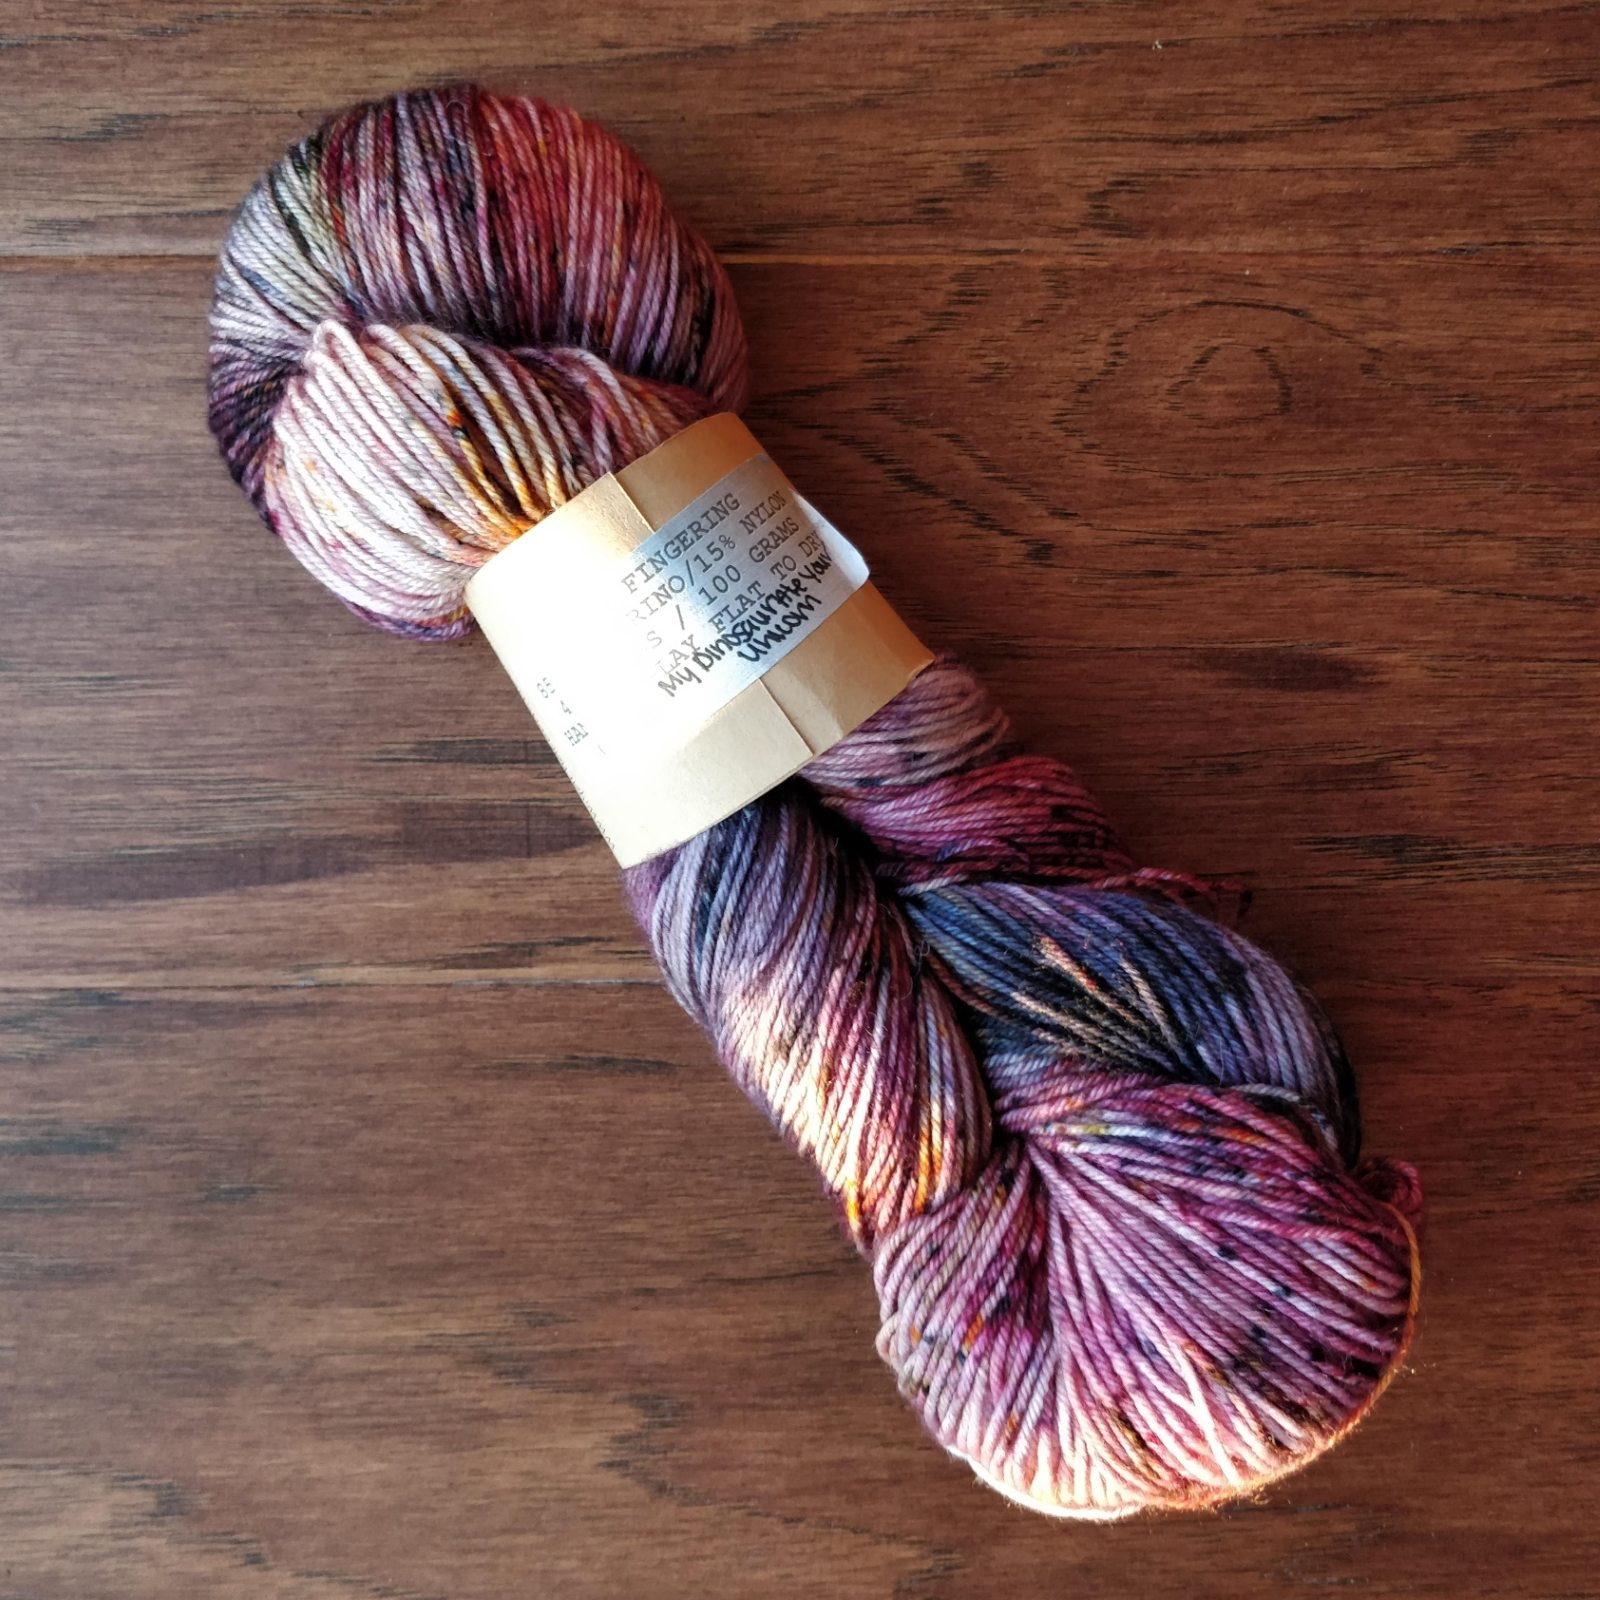 A skein of sock yarn in purples and a bit of orange, very sunsetty colours